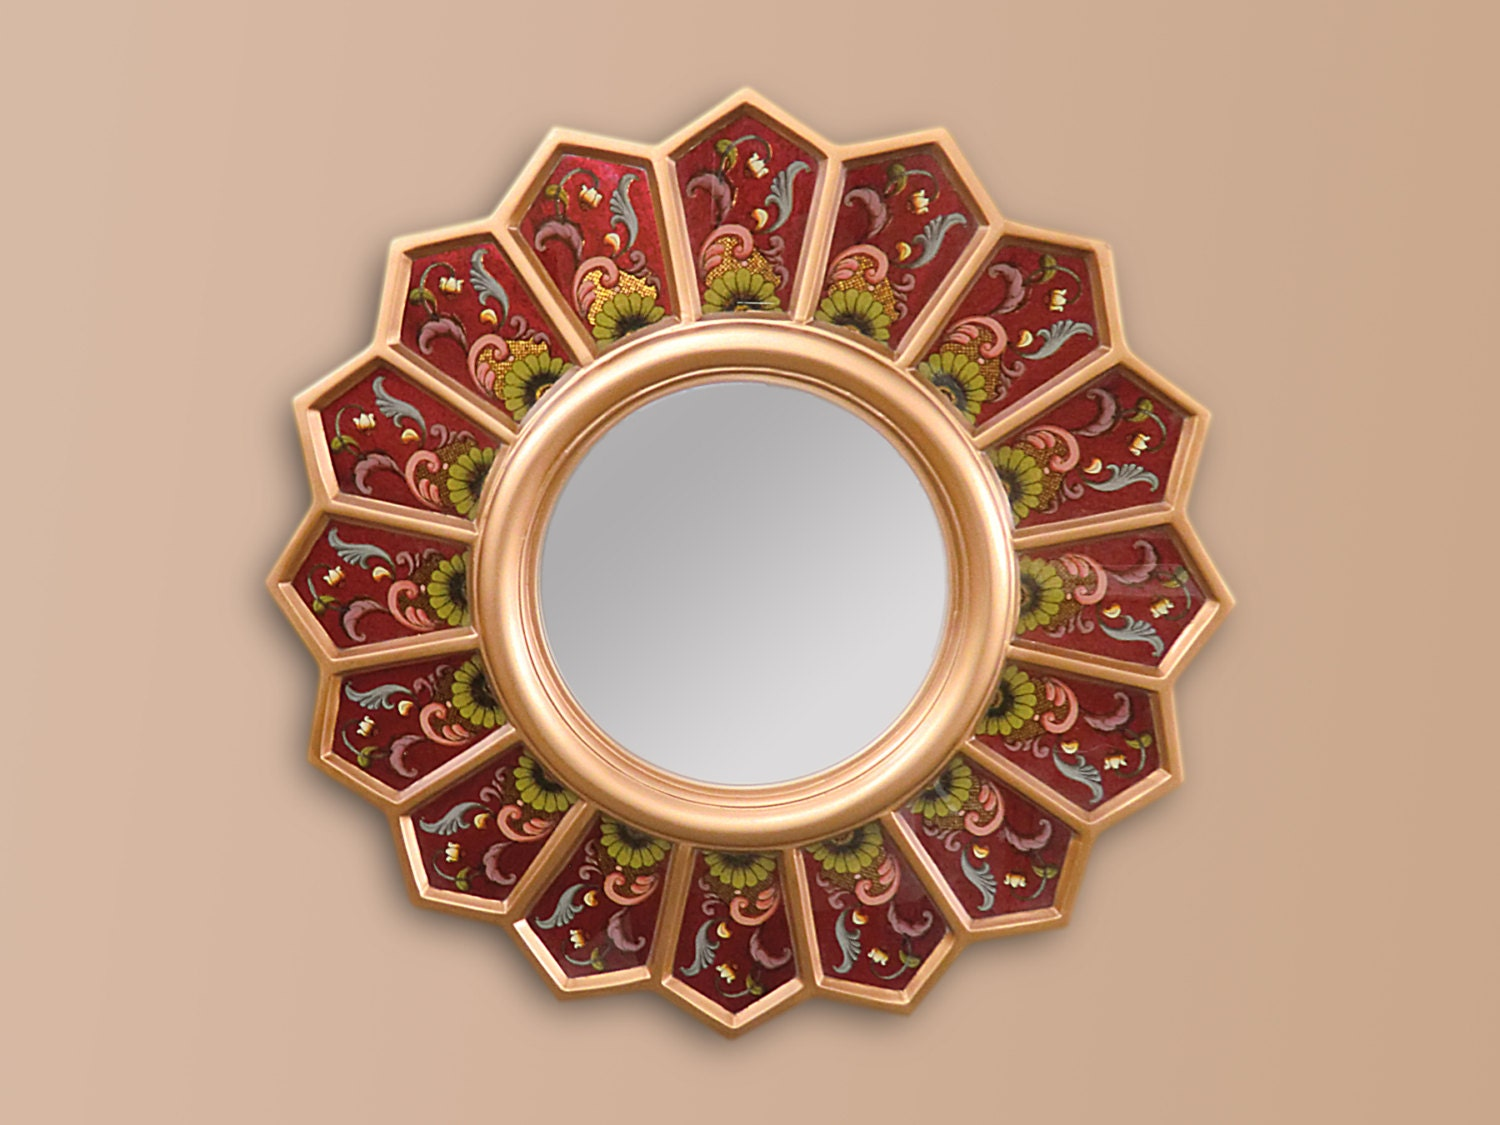 Round sunburst mirror 39 red sunflower 39 small by decorcontreras for Small round craft mirrors